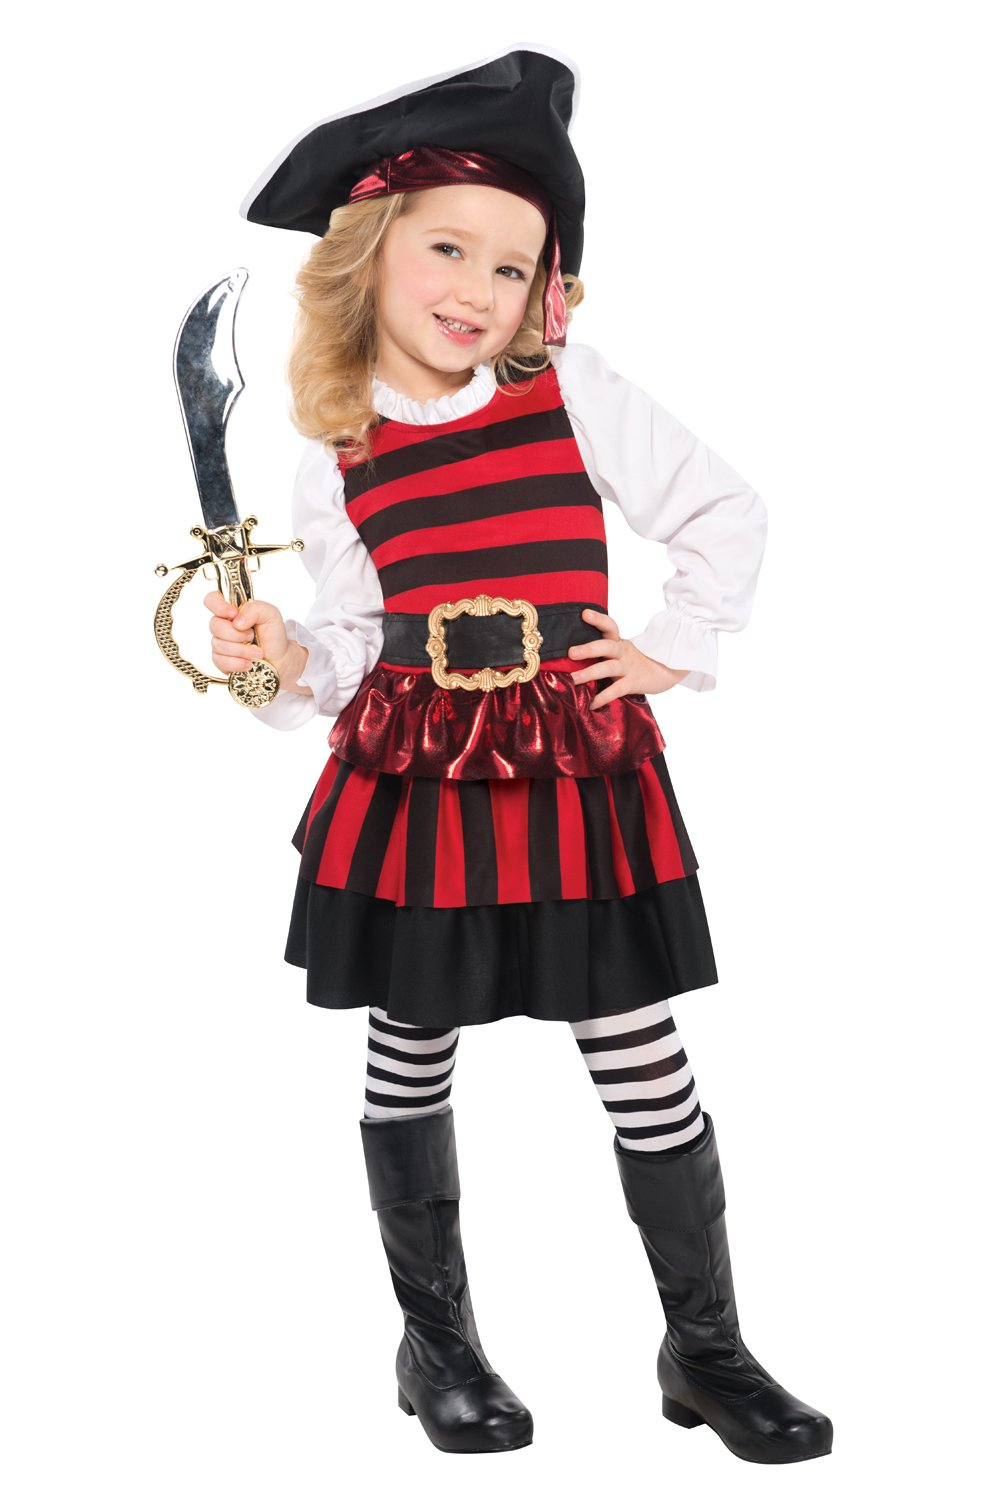 Christyu0027s Toddler Girls Little Lass Pirate Costume  sc 1 st  Amazon UK & Kids Pirate Costume: Amazon.co.uk